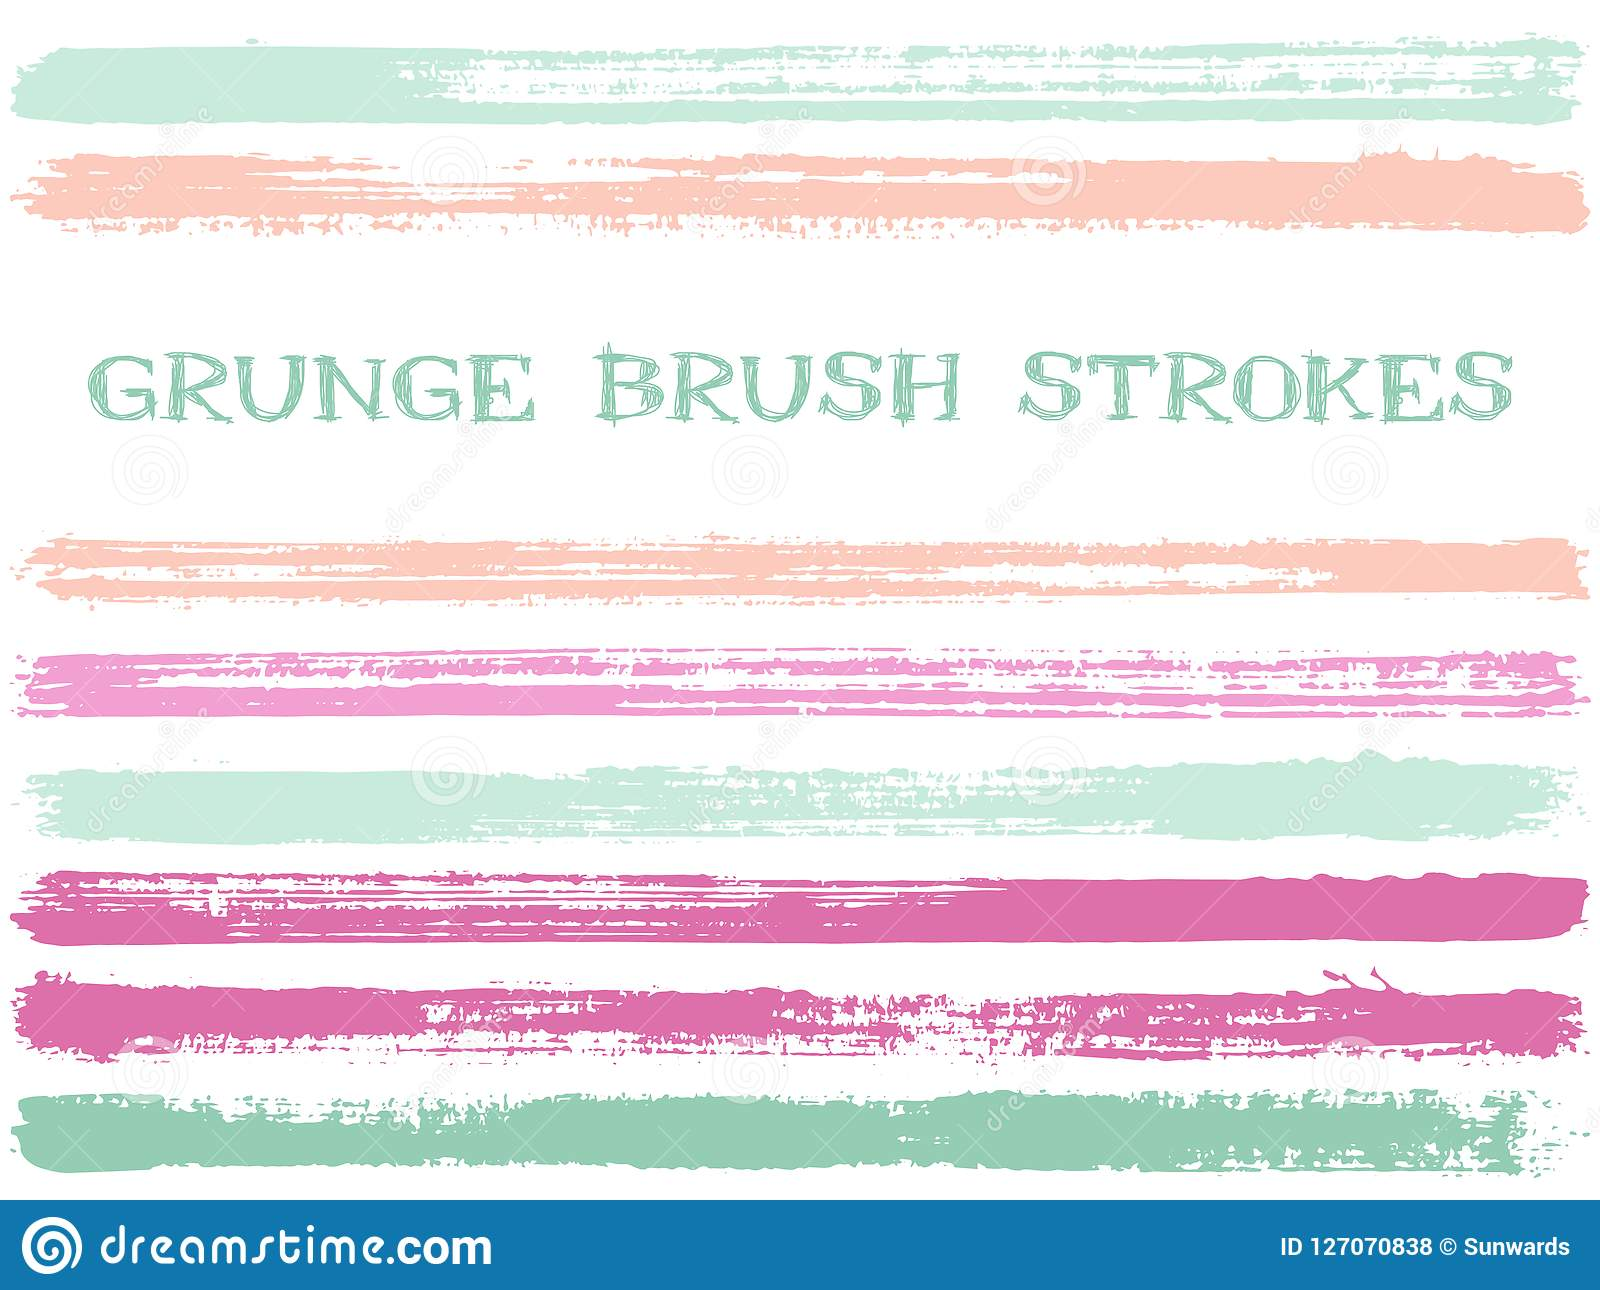 Cool Blue Paint Pink Blue Ink Brush Strokes Isolated Design Elements Set Of Paint